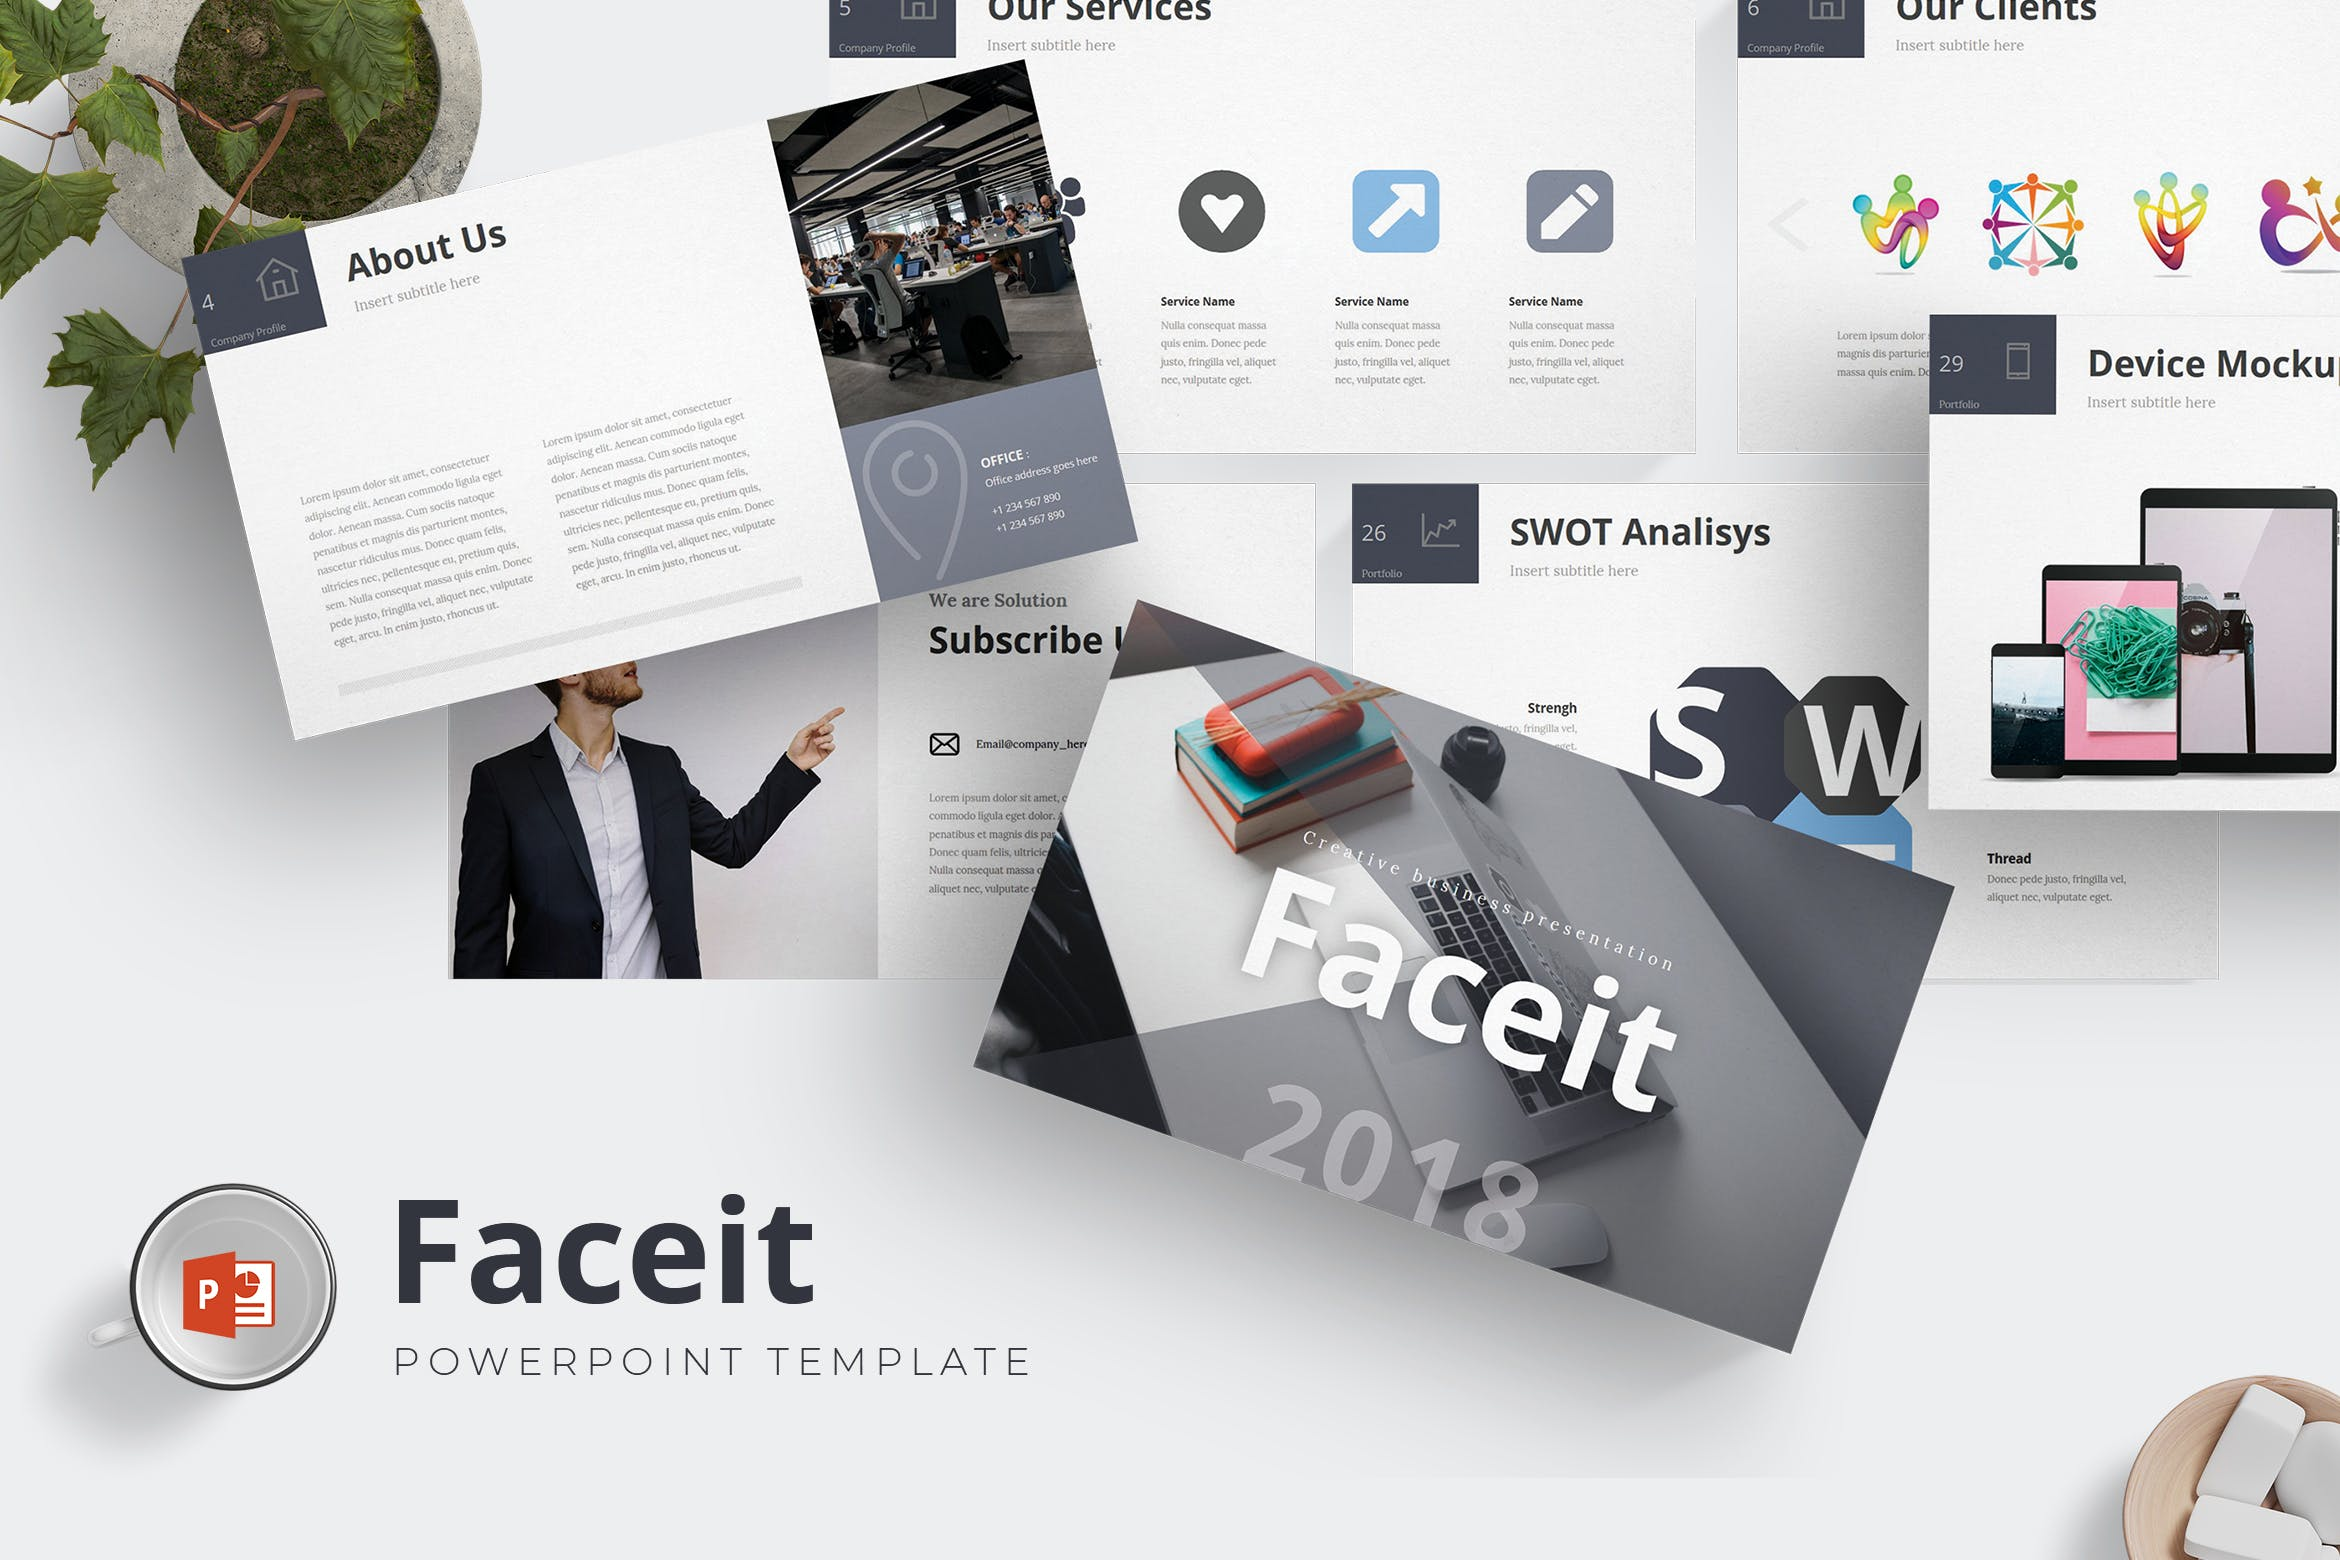 欧美现代时尚商务PPT模版 Faceit - Powerpoint Template